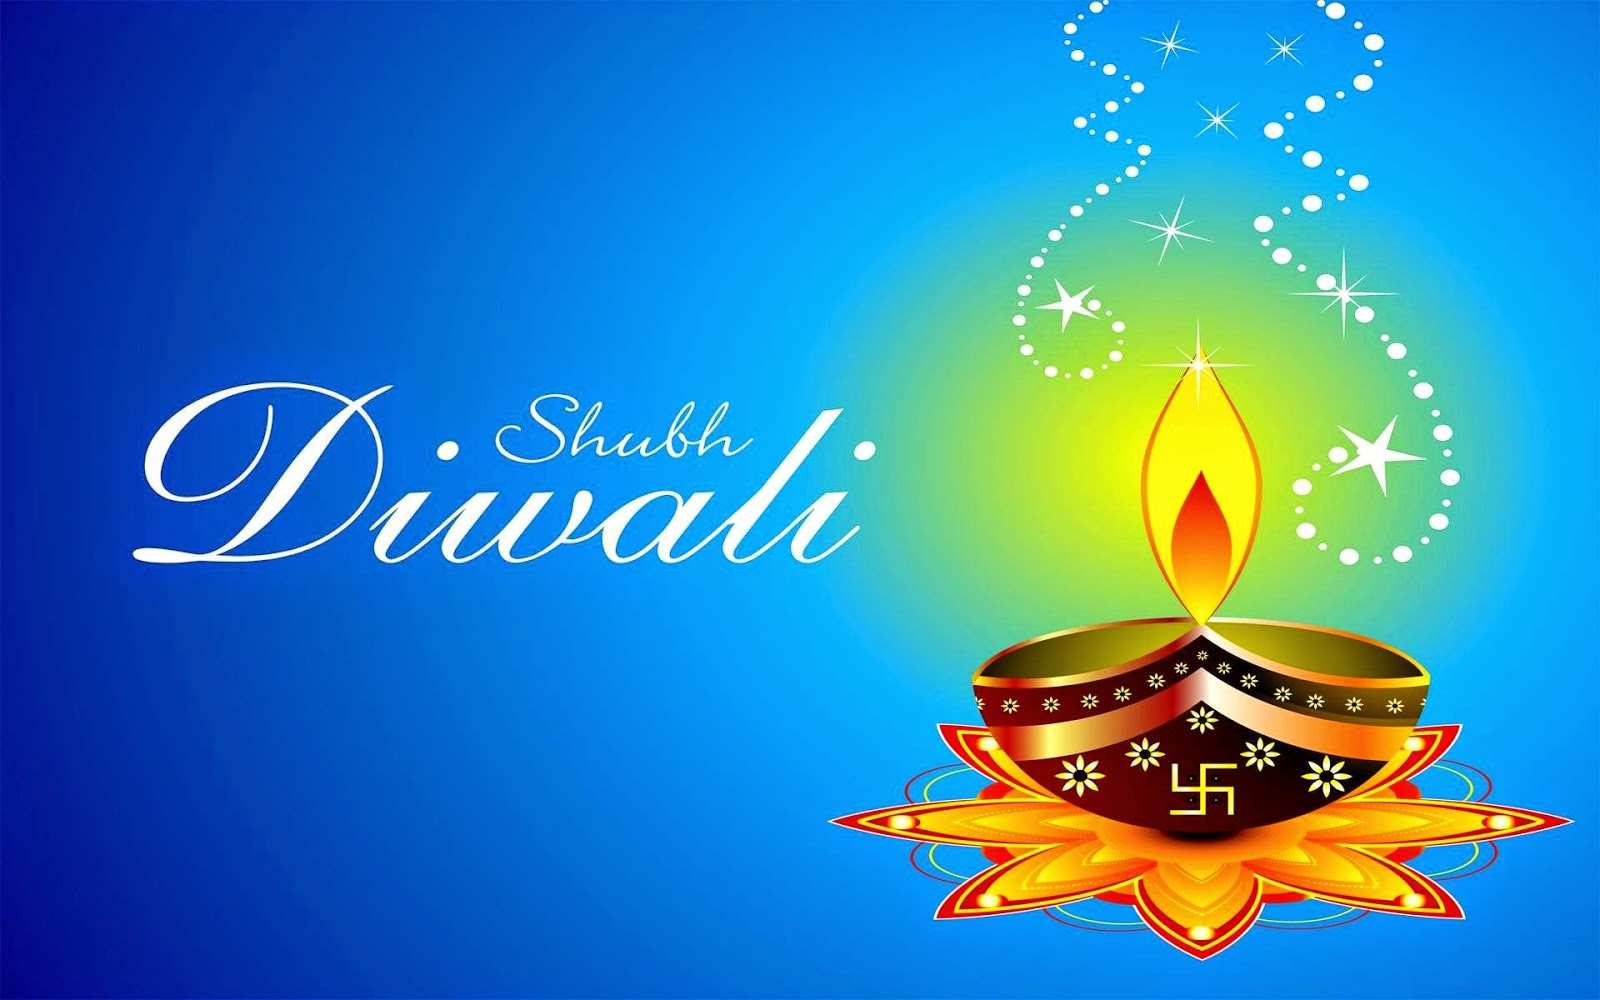 happy diwali wallpaper 2014 hd quality widescreen free